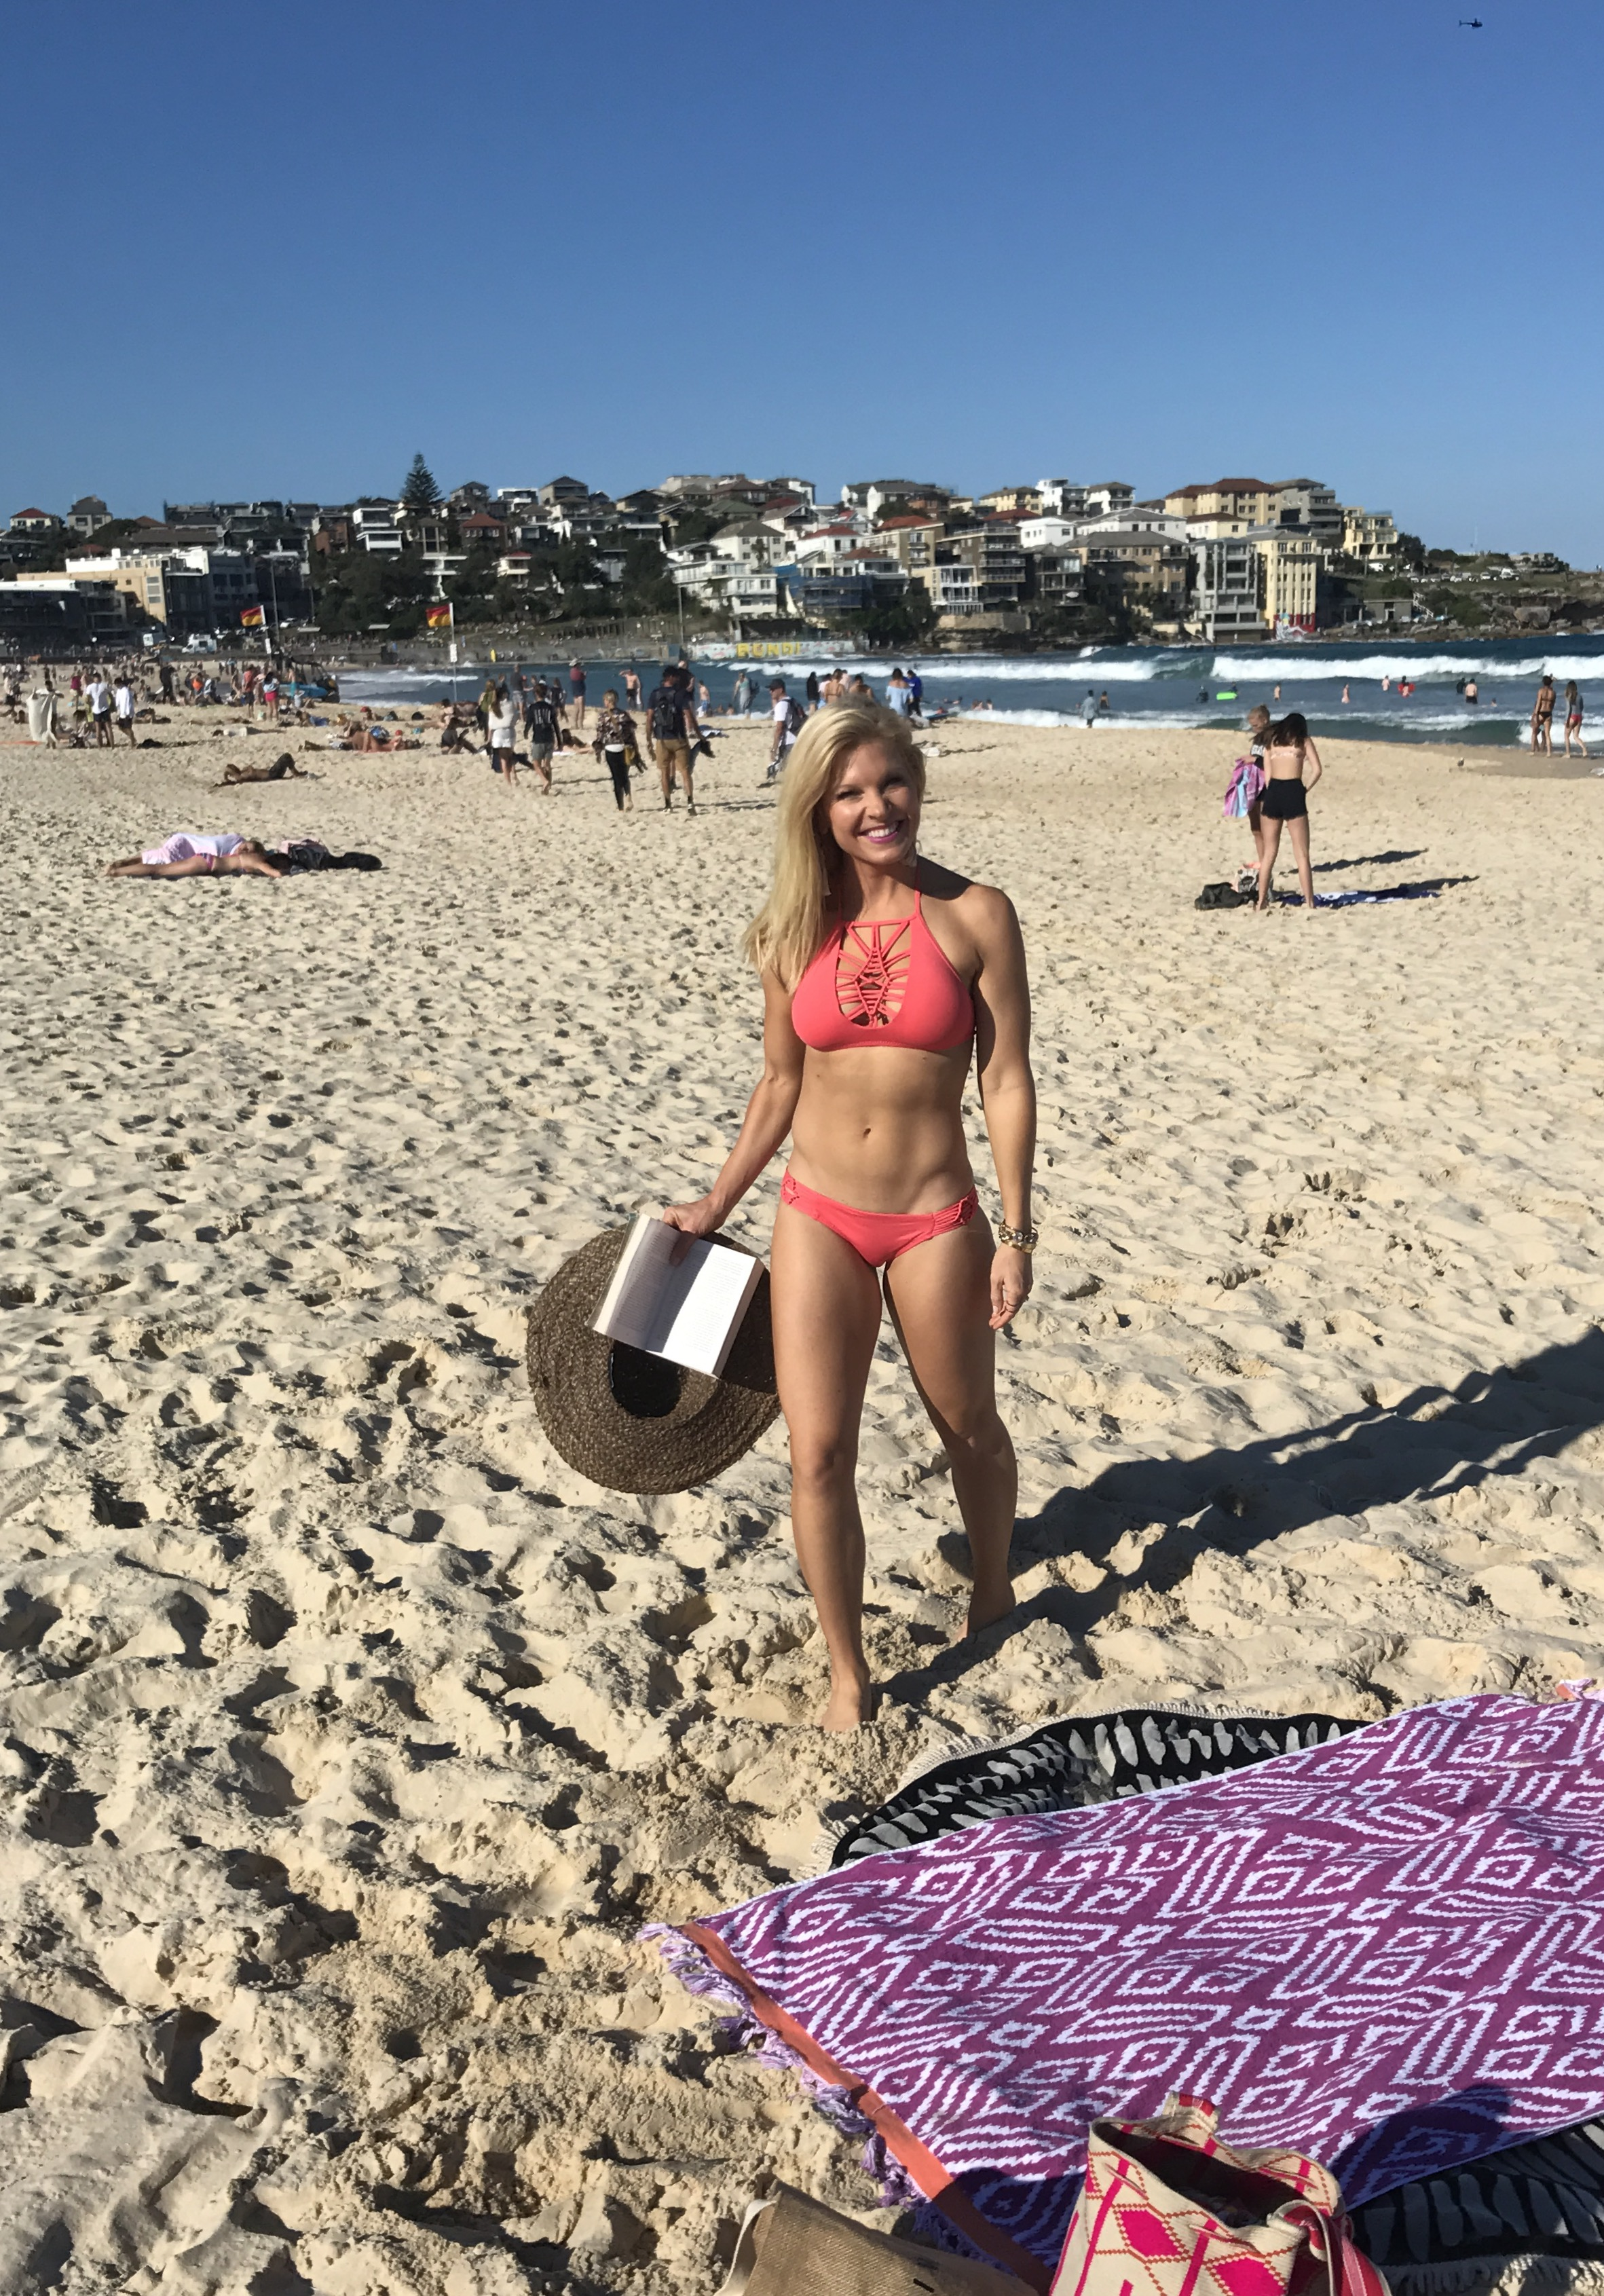 Anna Kooiman Bondi Beach Bikini Lattice Crochet Coral Red May 2017